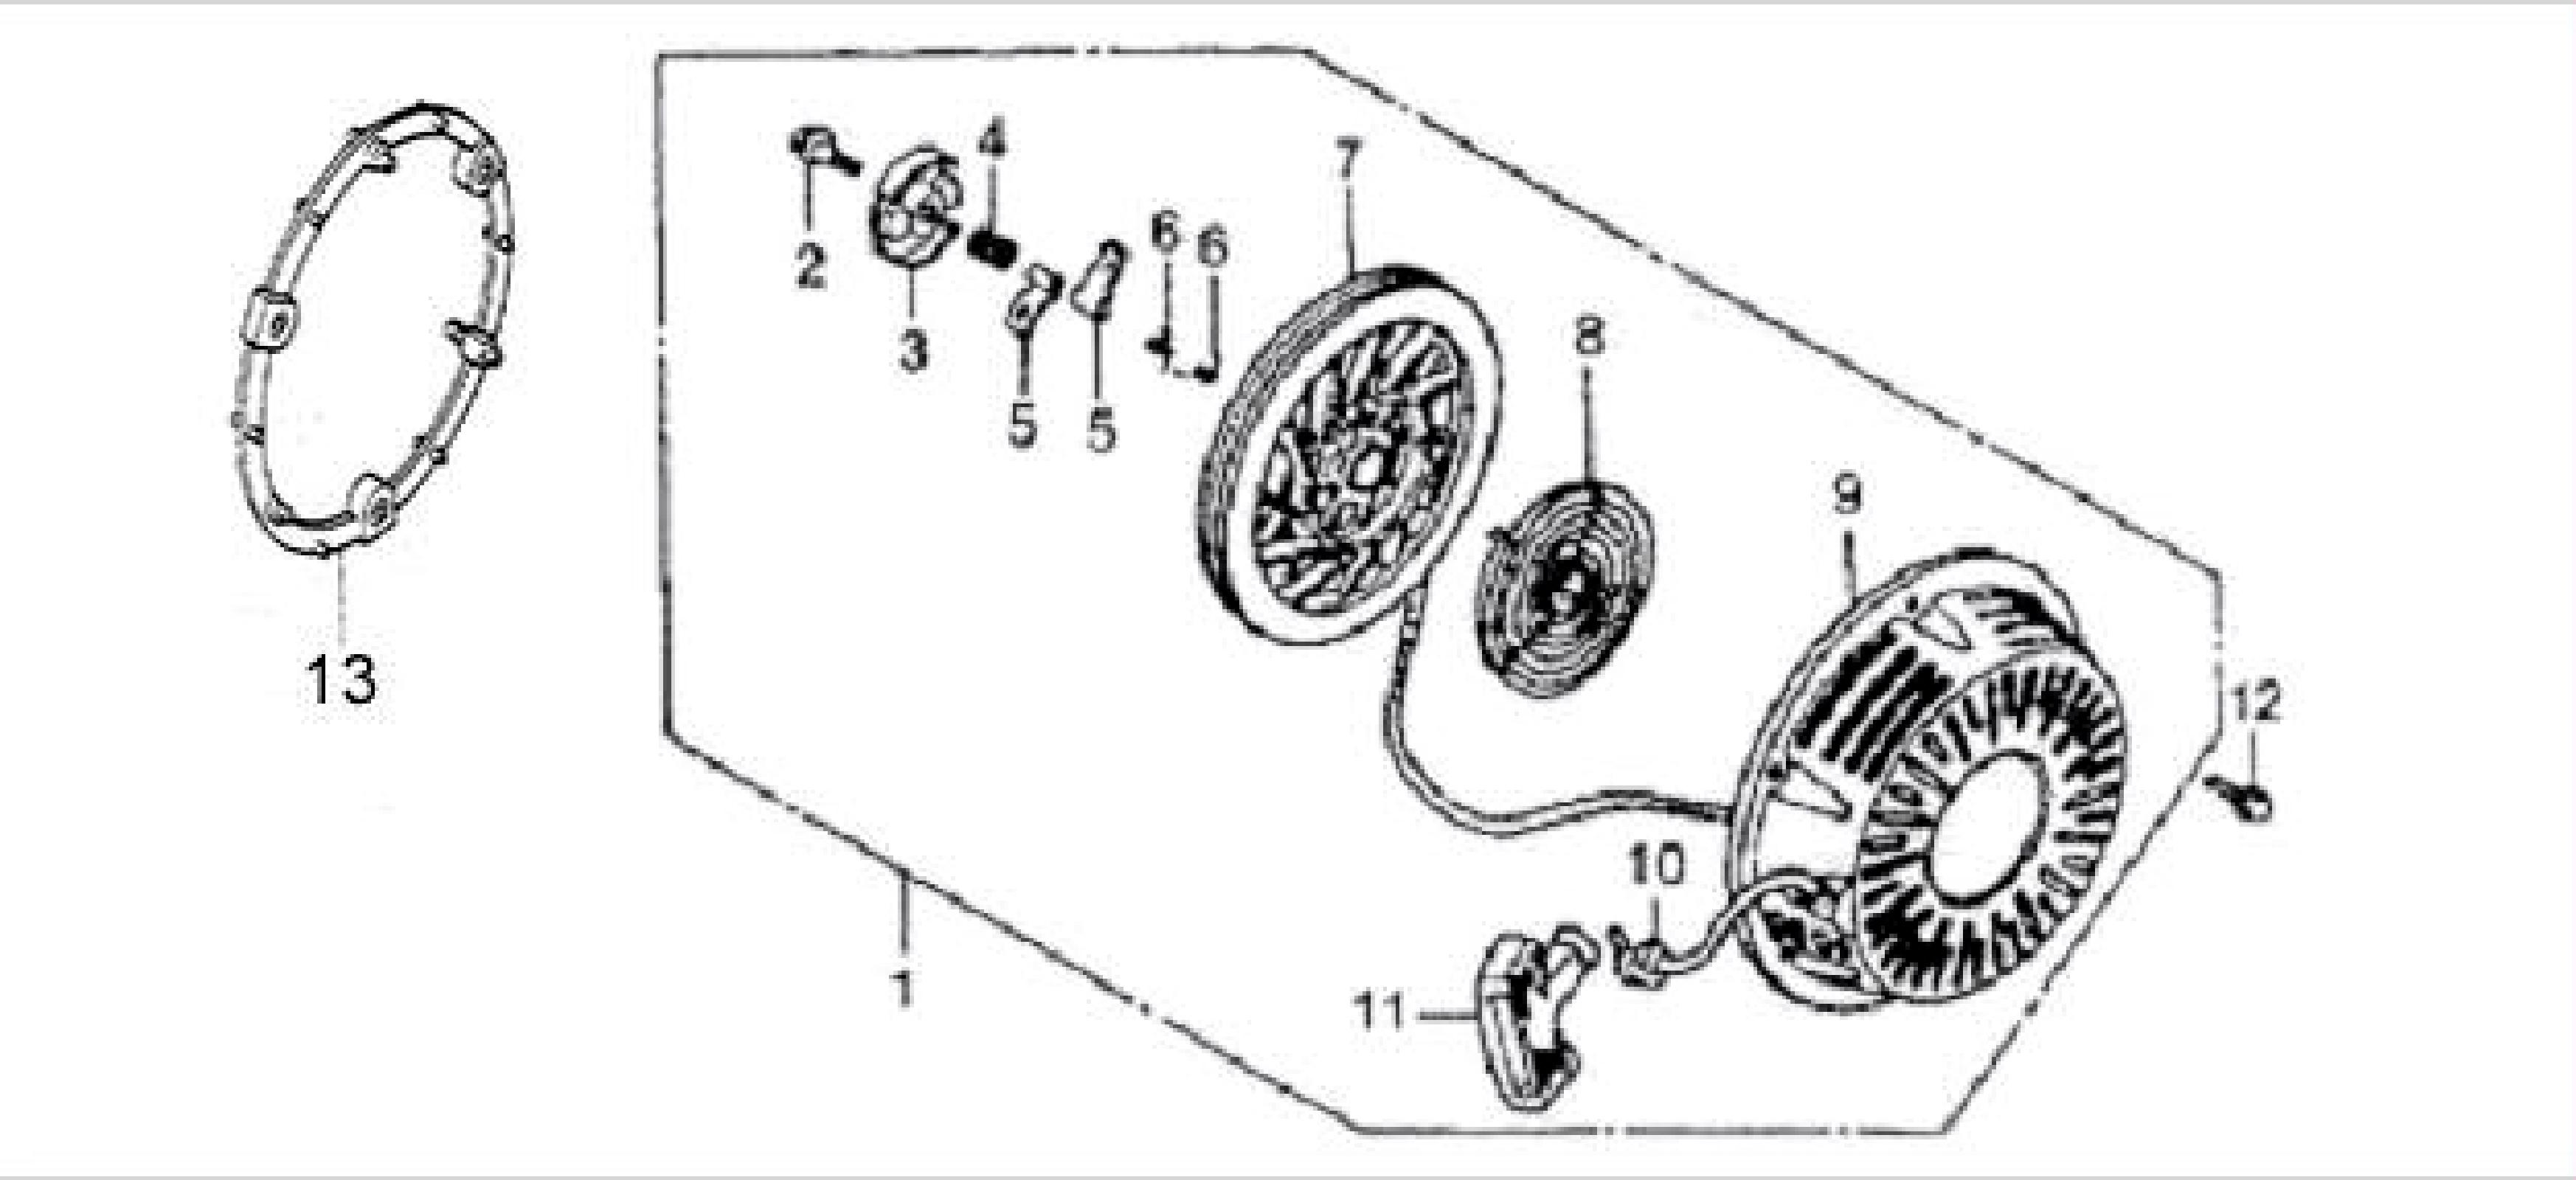 Recoil Starter System also Diagram further Governor Spring Renamed furthermore Carburetor System Assy likewise Reduction. on honda gx200 engine parts diagram